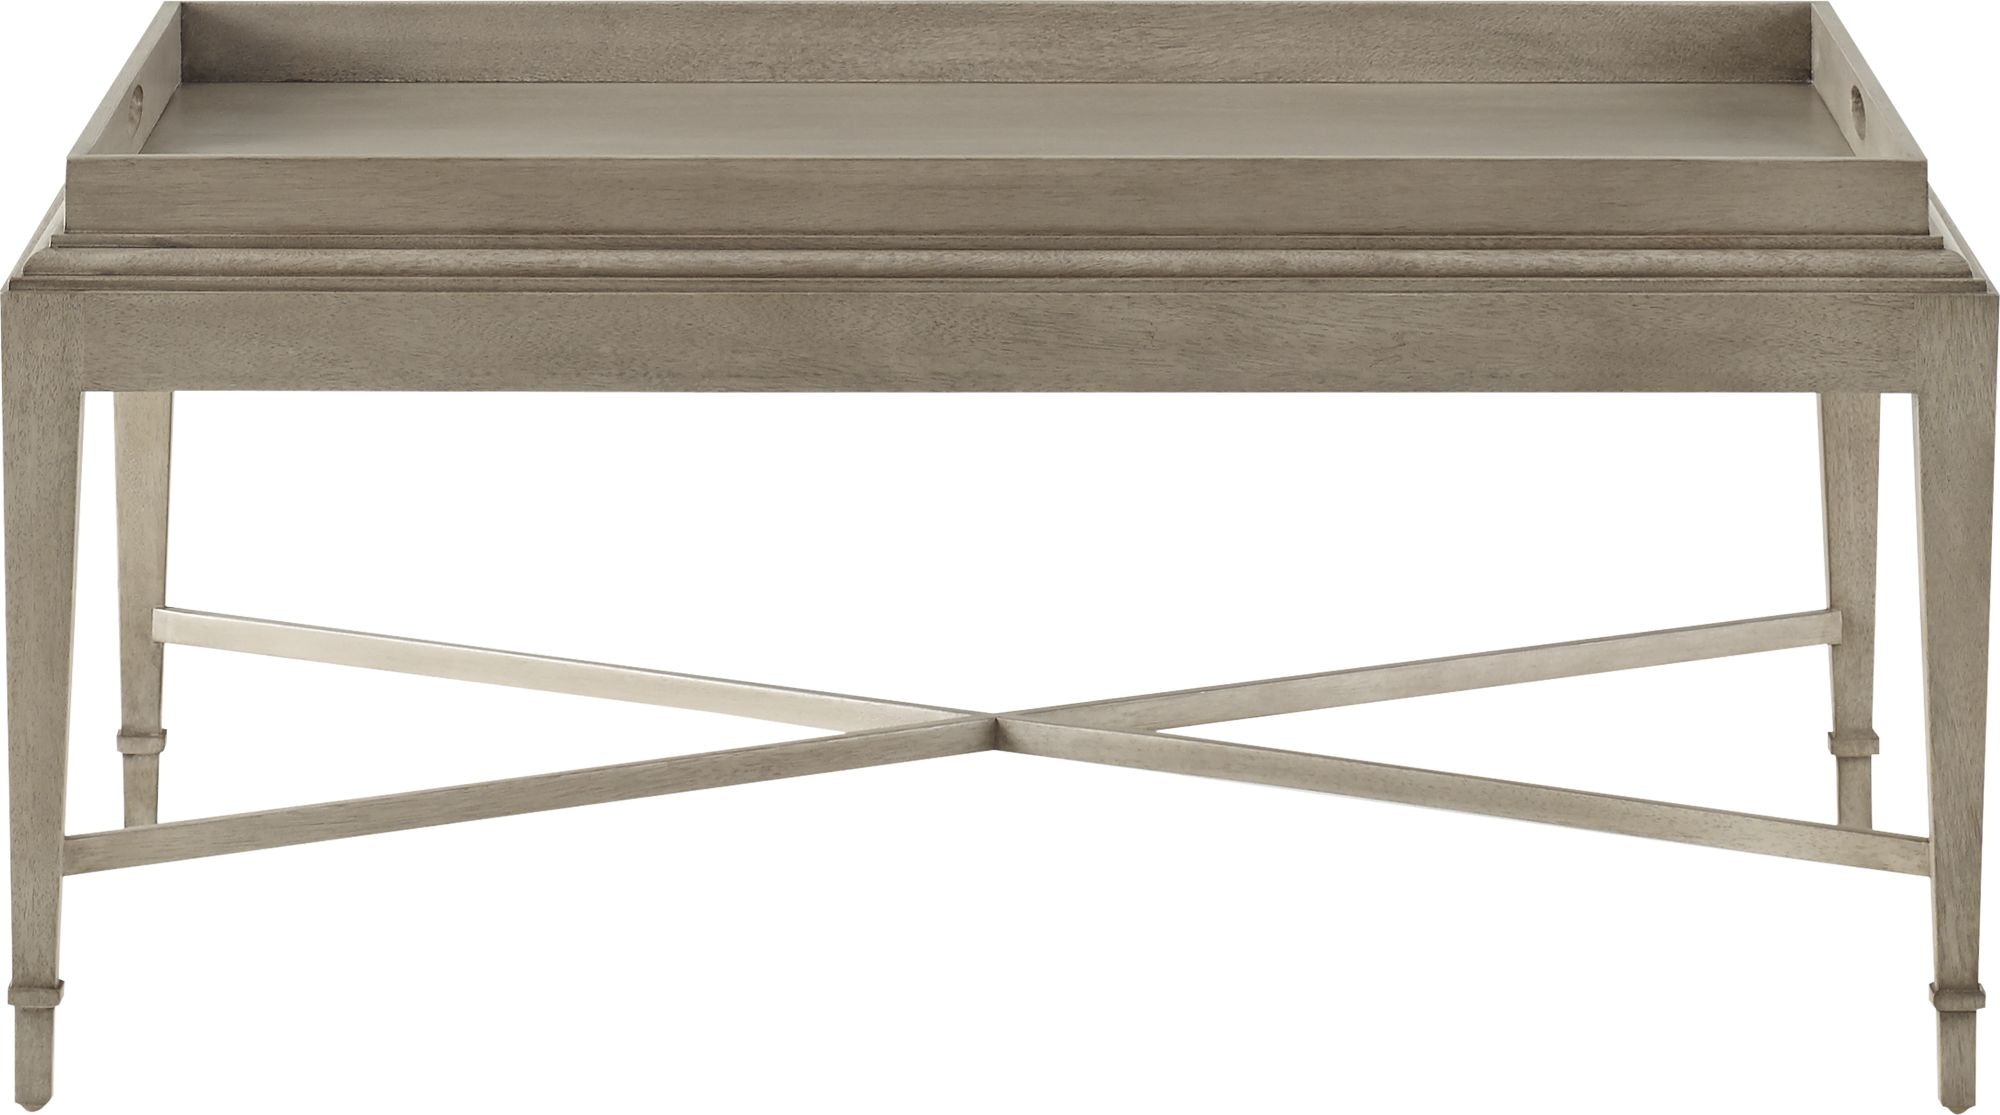 Baker Furniture 3451 Living Room Barbara Barry Tray Coffee Table